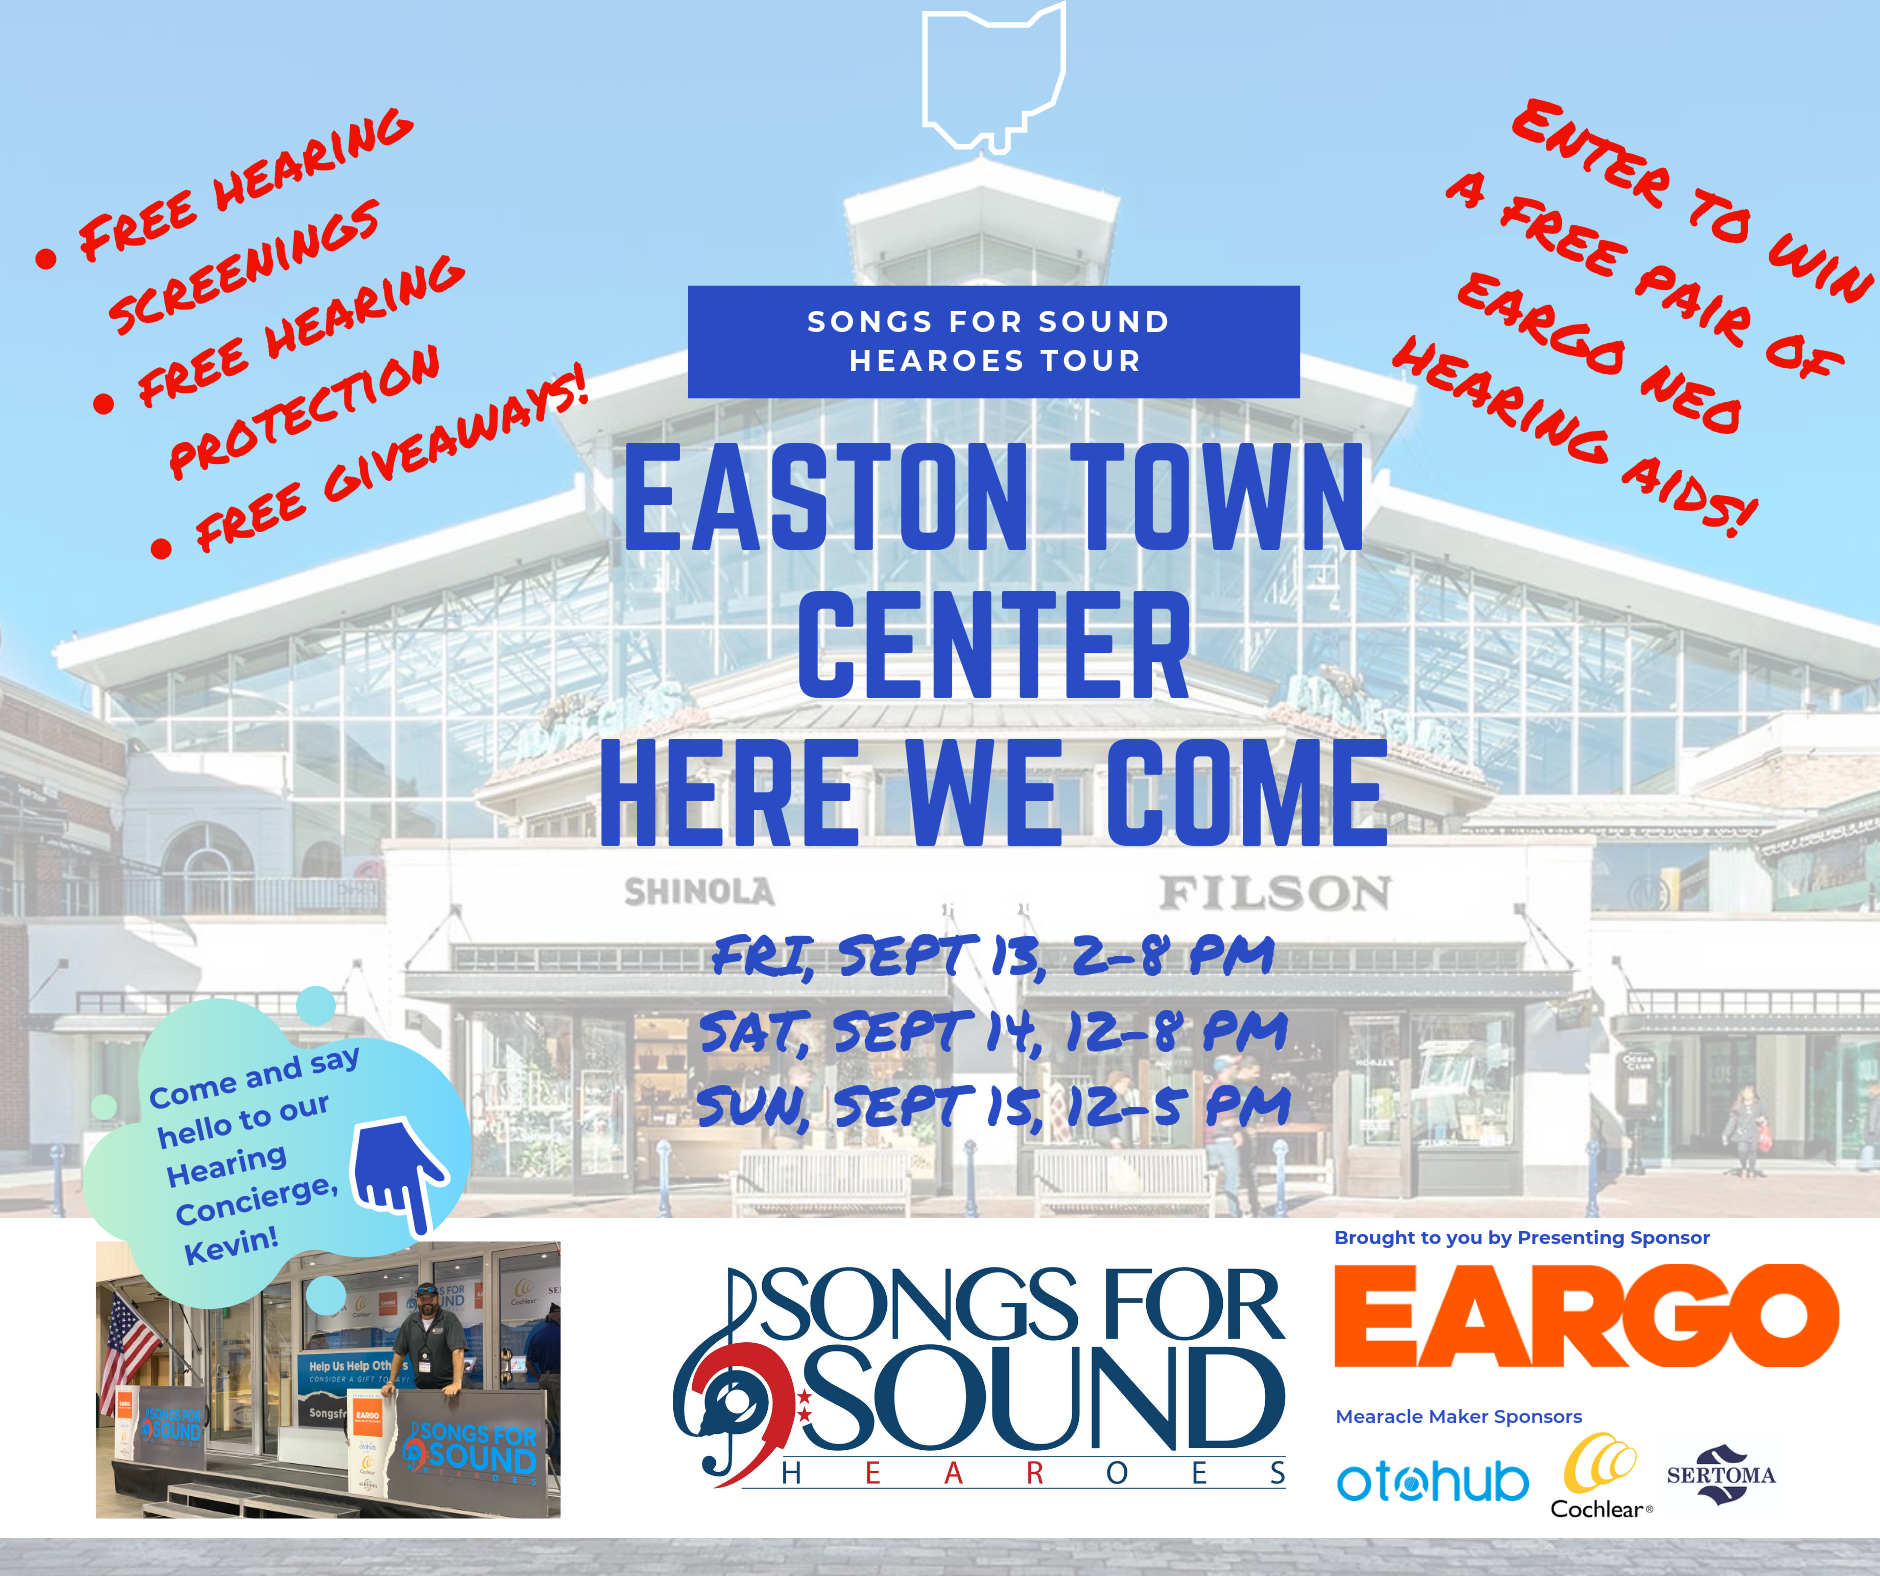 Songs for Sound Partners with Easton Town Center to Give the Gift of Hearing